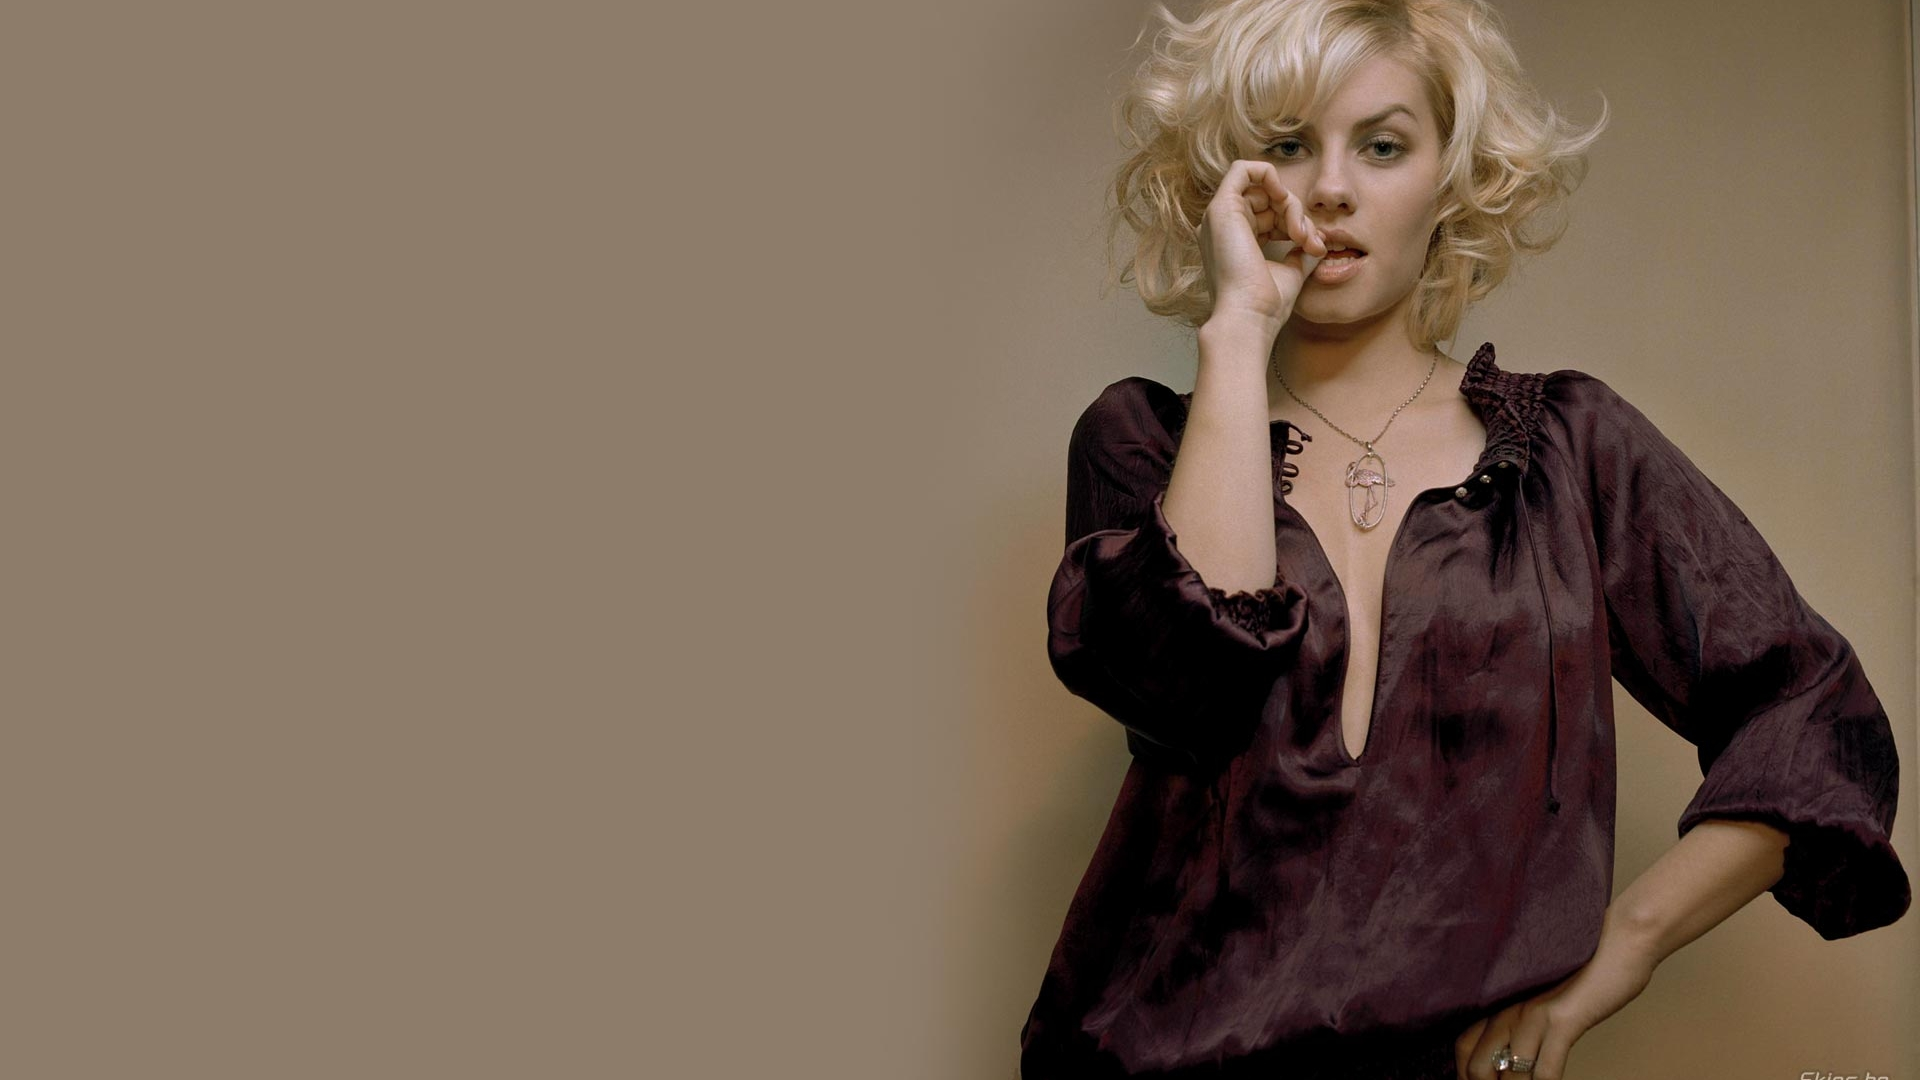 Fresh Elisha Cuthbert  hot full hd photo Wallpaper